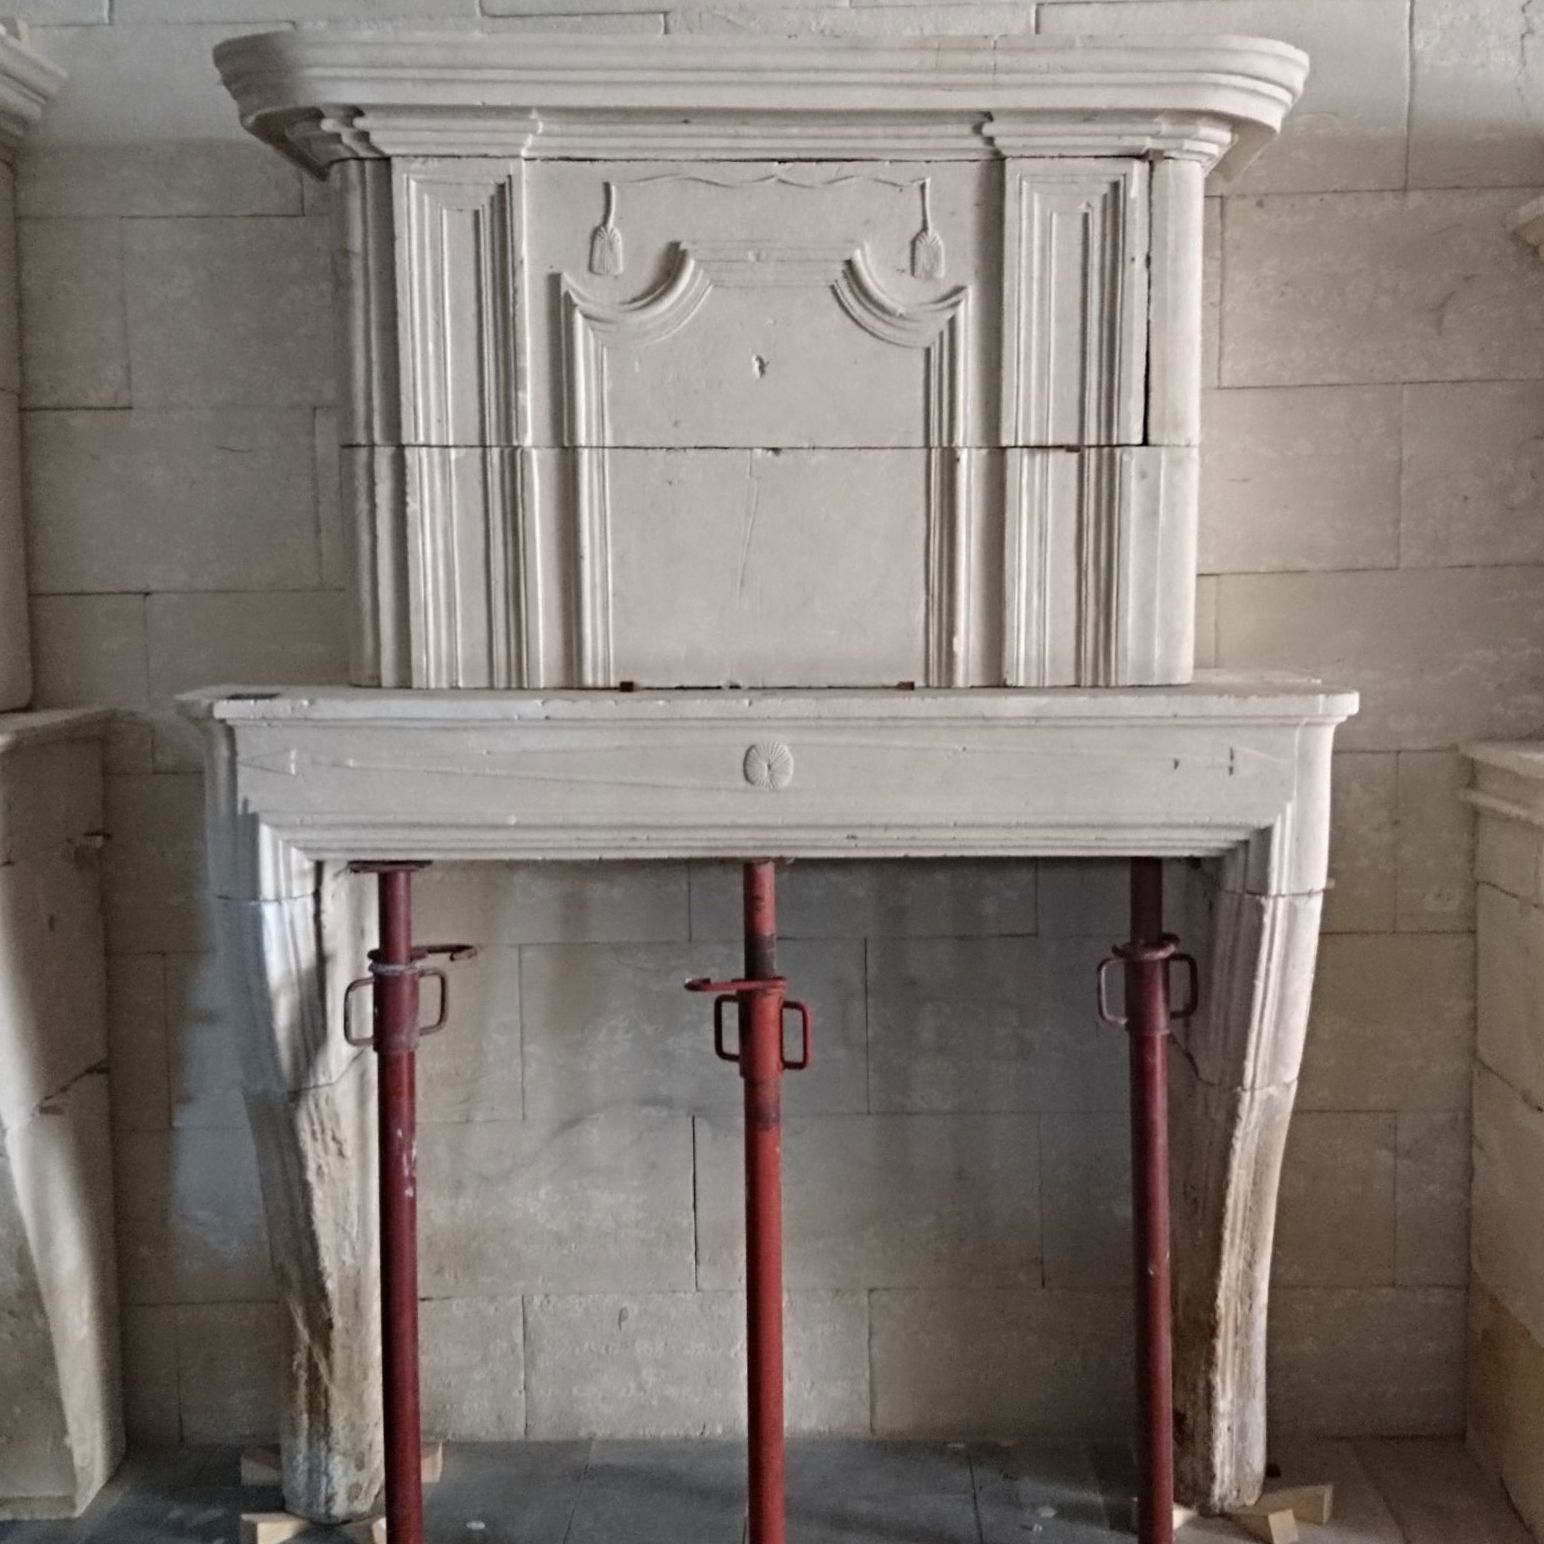 An elegant antique fireplace resolutely Louis XIV - Atelier BIDAL in Provence.